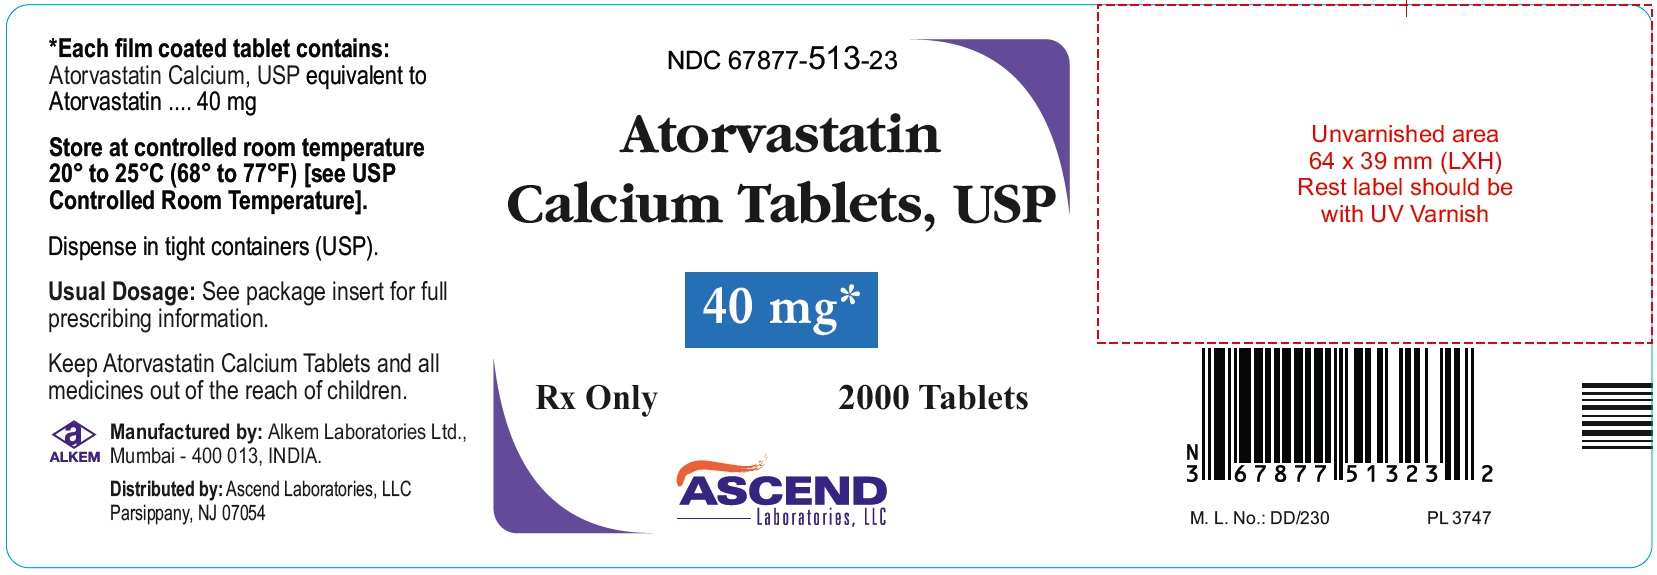 atorvastatin-40mg-2000s-count-new